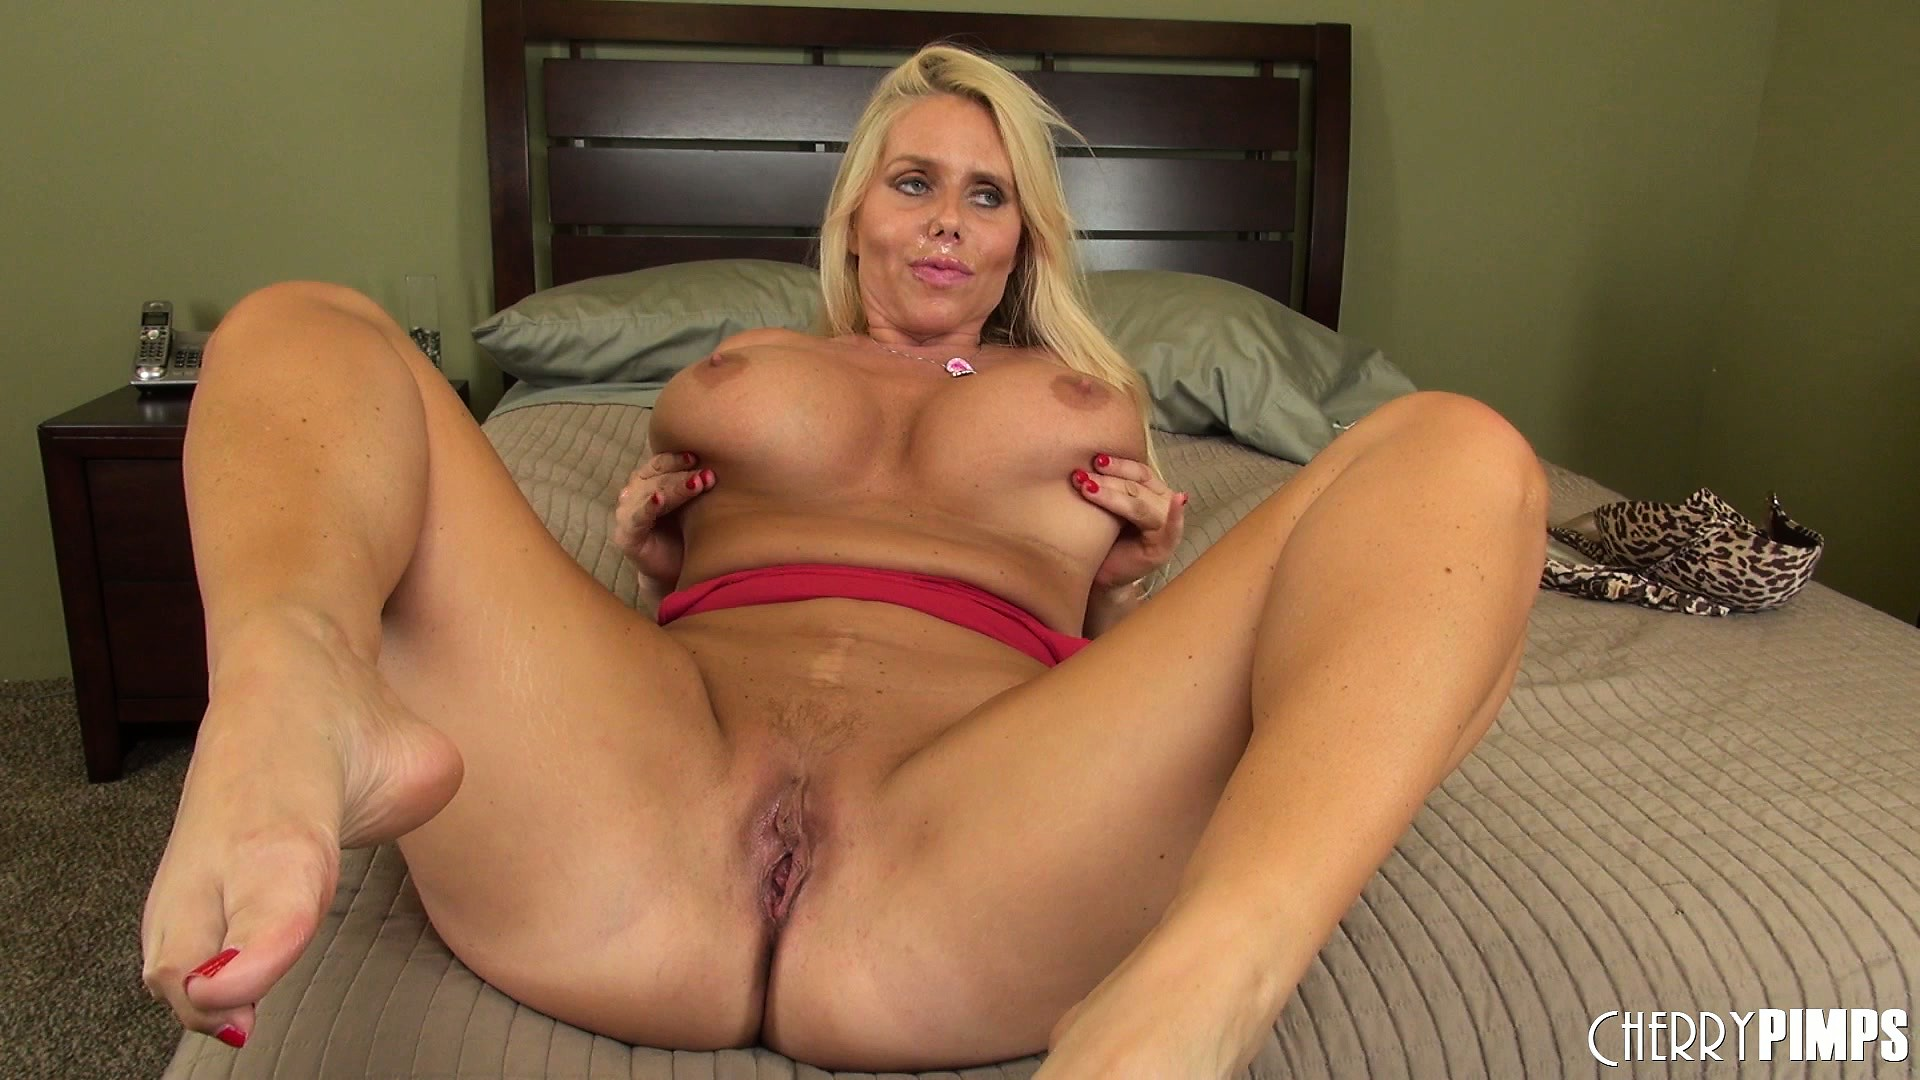 Porno Video of Karen Enjoys The Hardcore Adventure On The Bed And Receives His Cum In Her Mouth